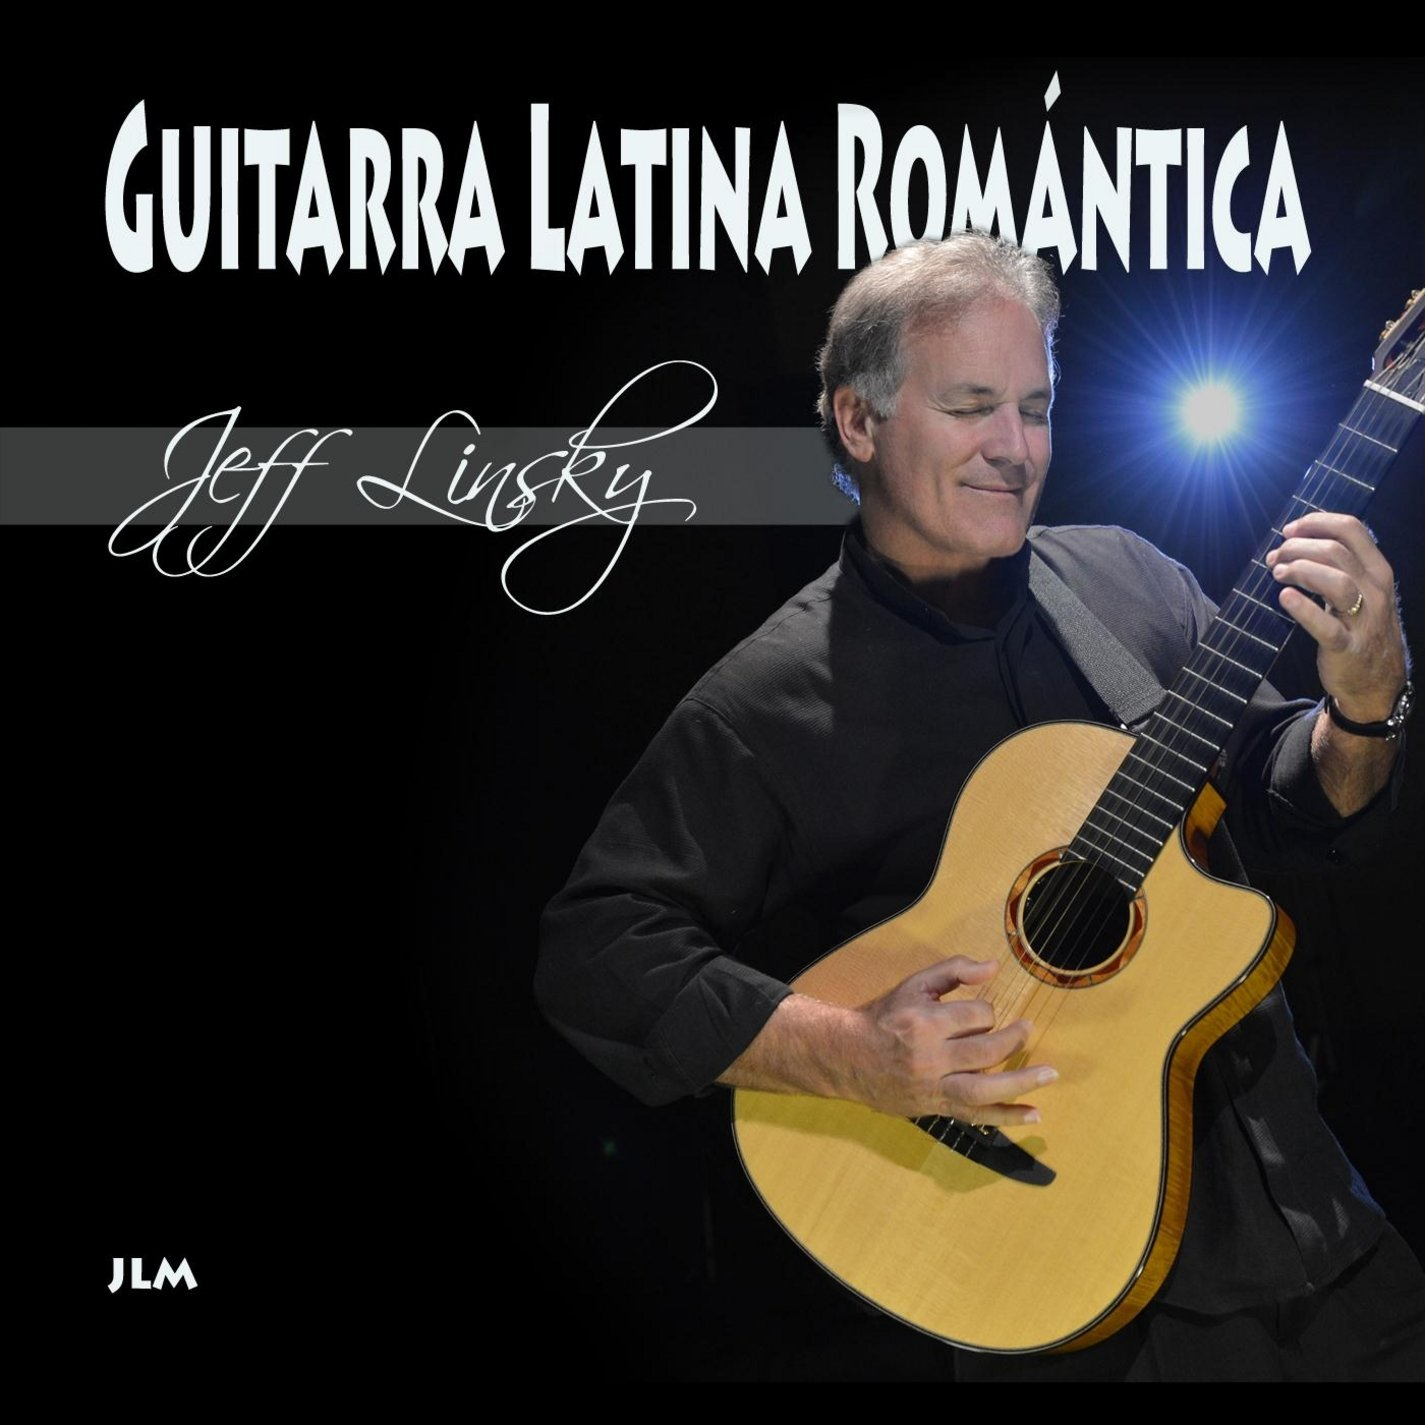 Guitarra Latina Romantica: Jeff Linsky: Amazon.es: Música